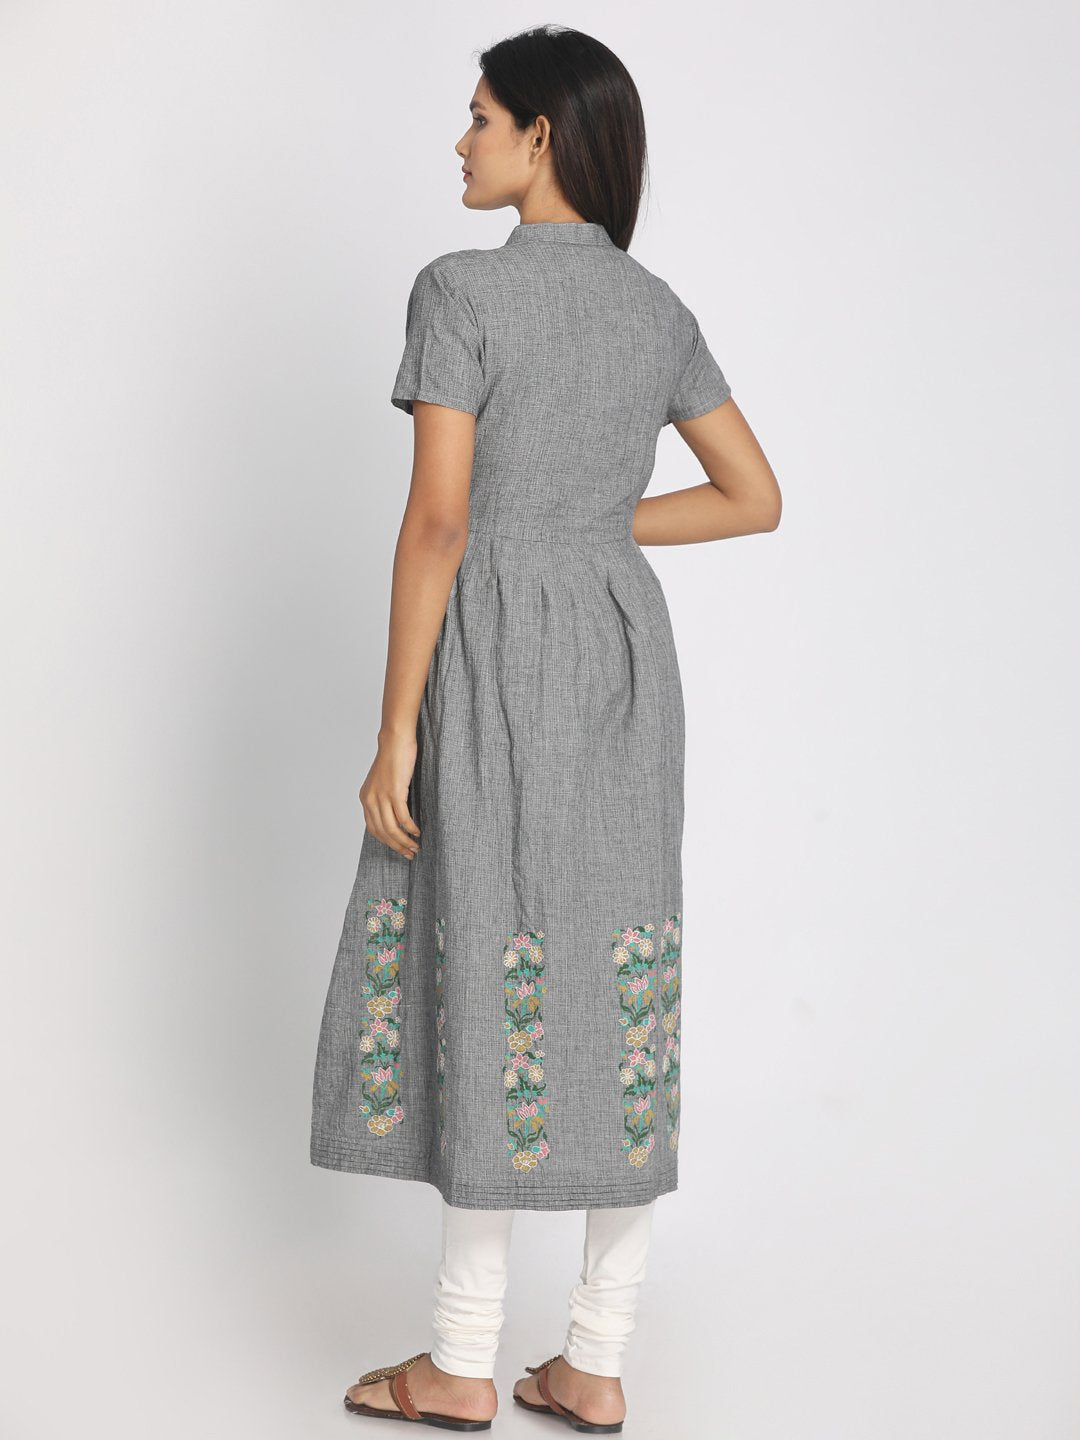 Block Printed and Embroidered Grey Maxi Dress With Mask